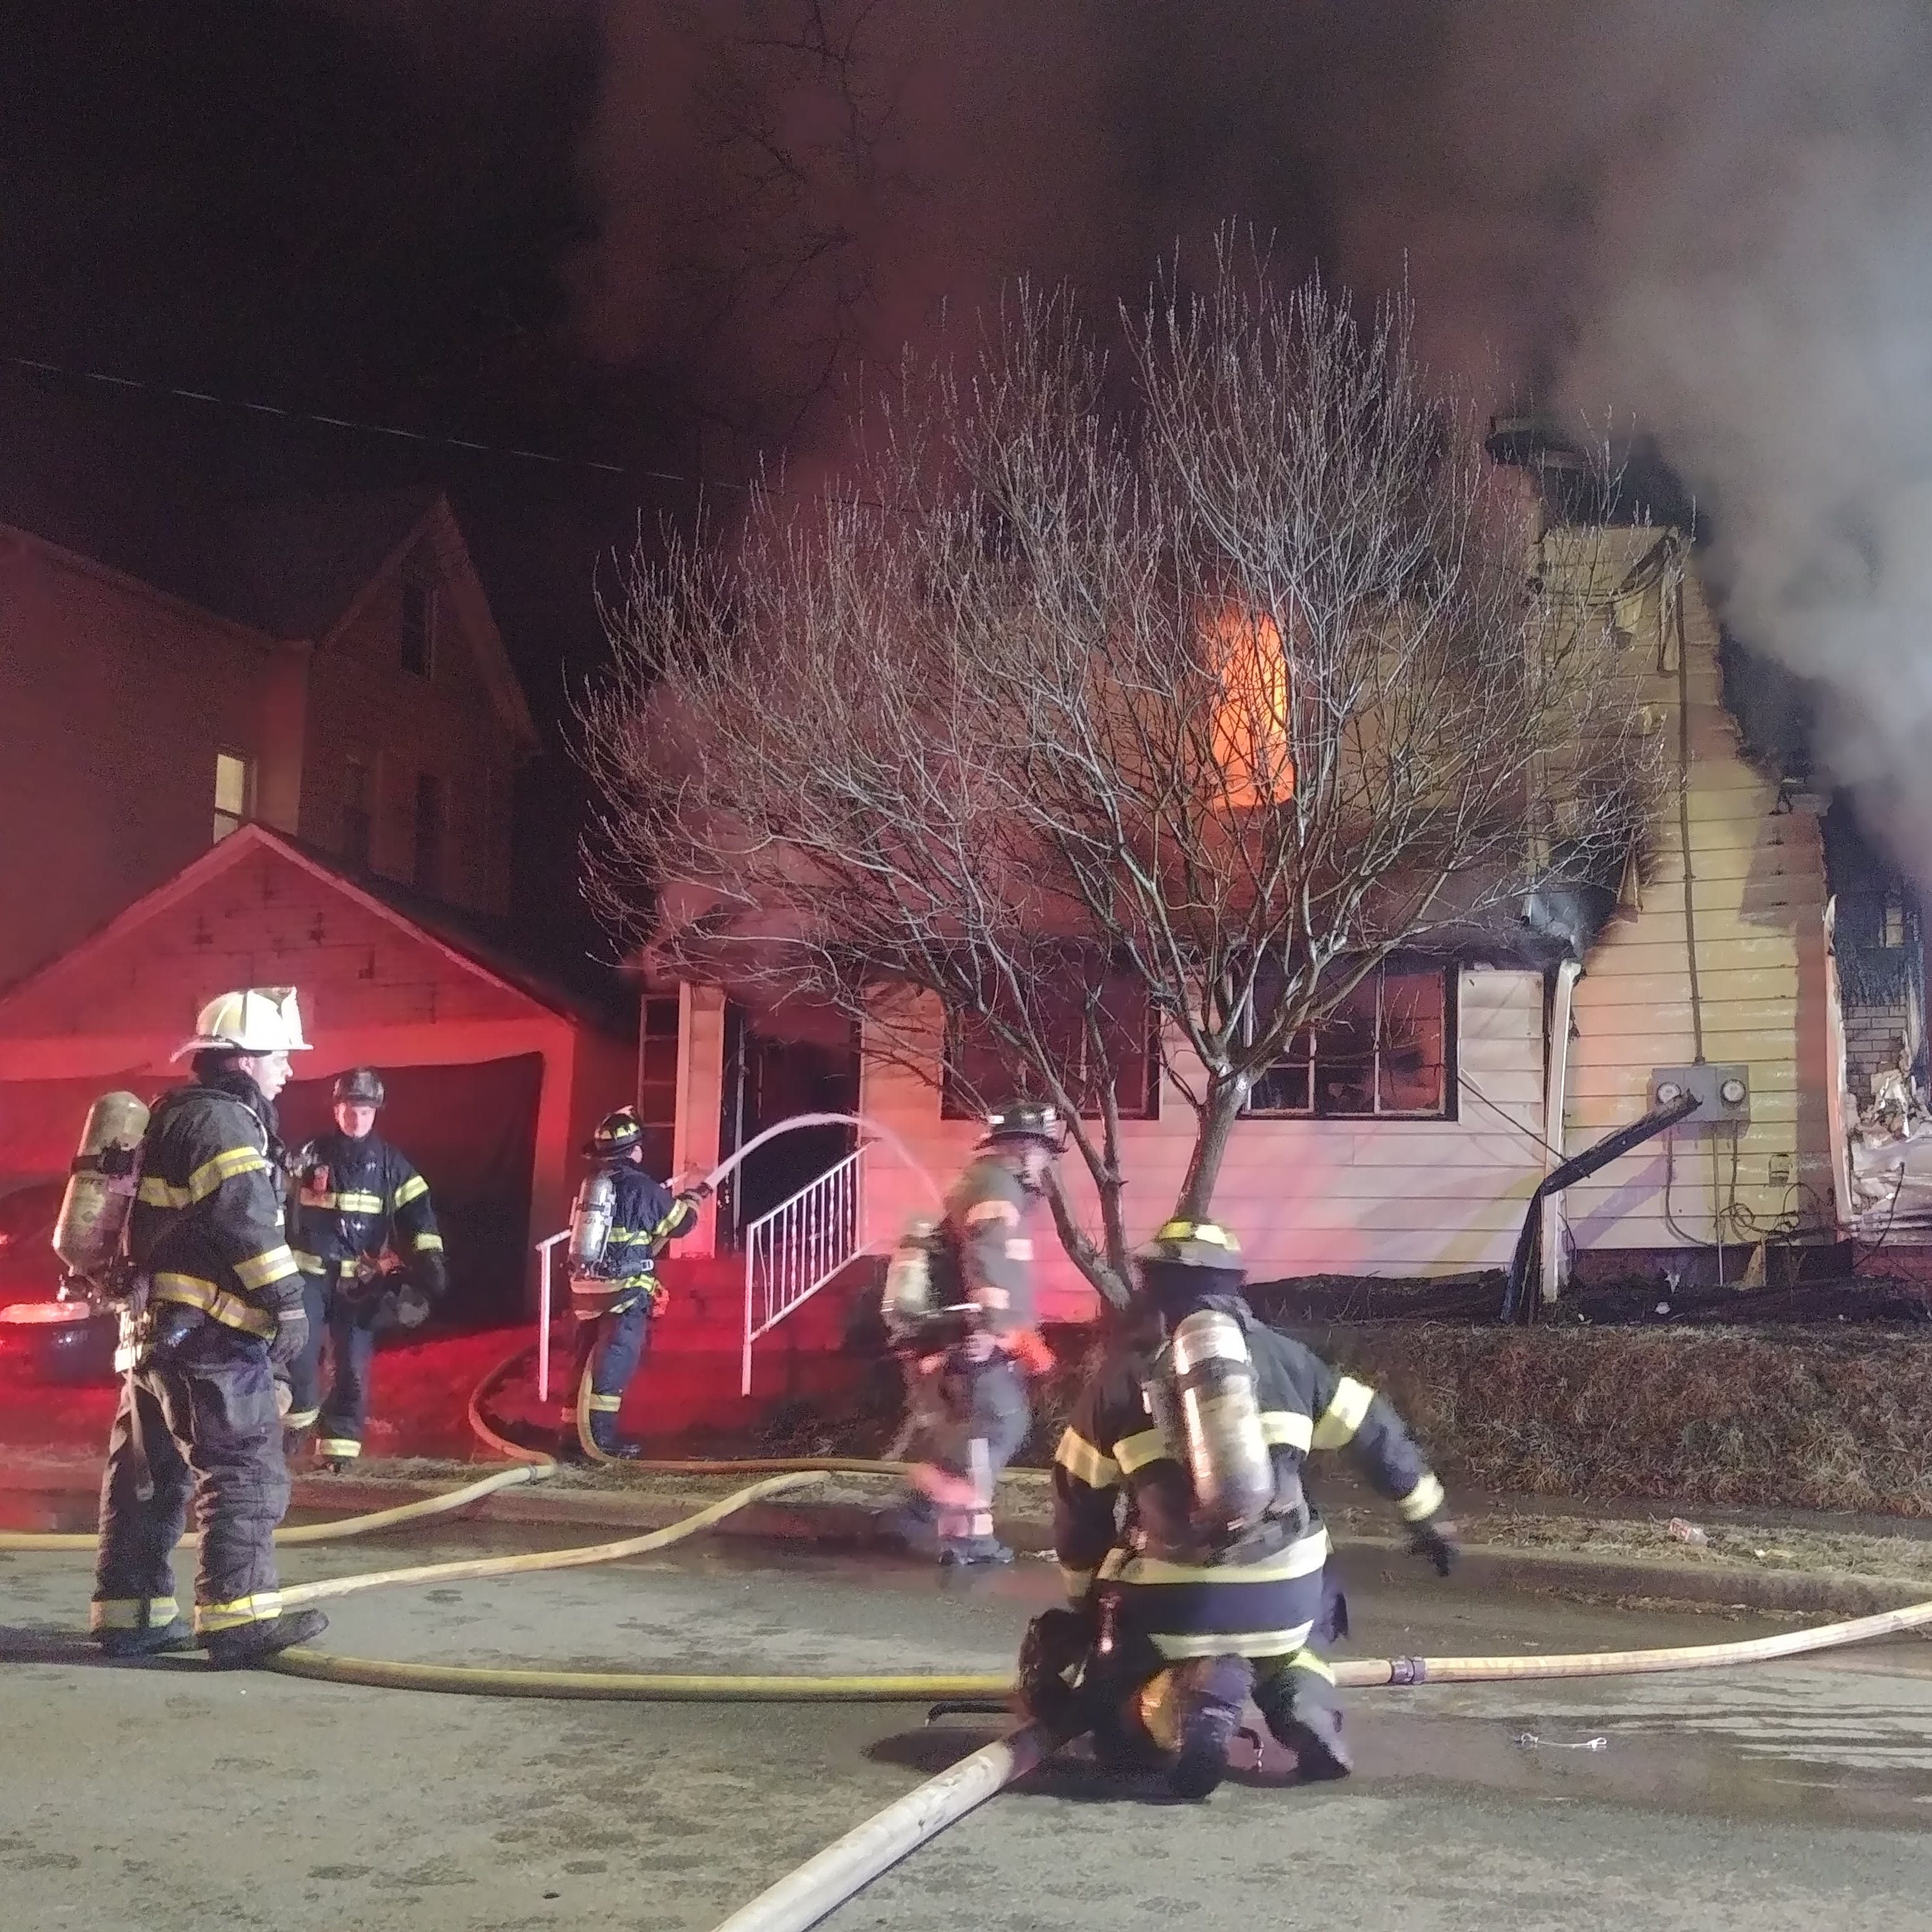 No one injured in massive fire that destroys City of Poughkeepsie vacant building